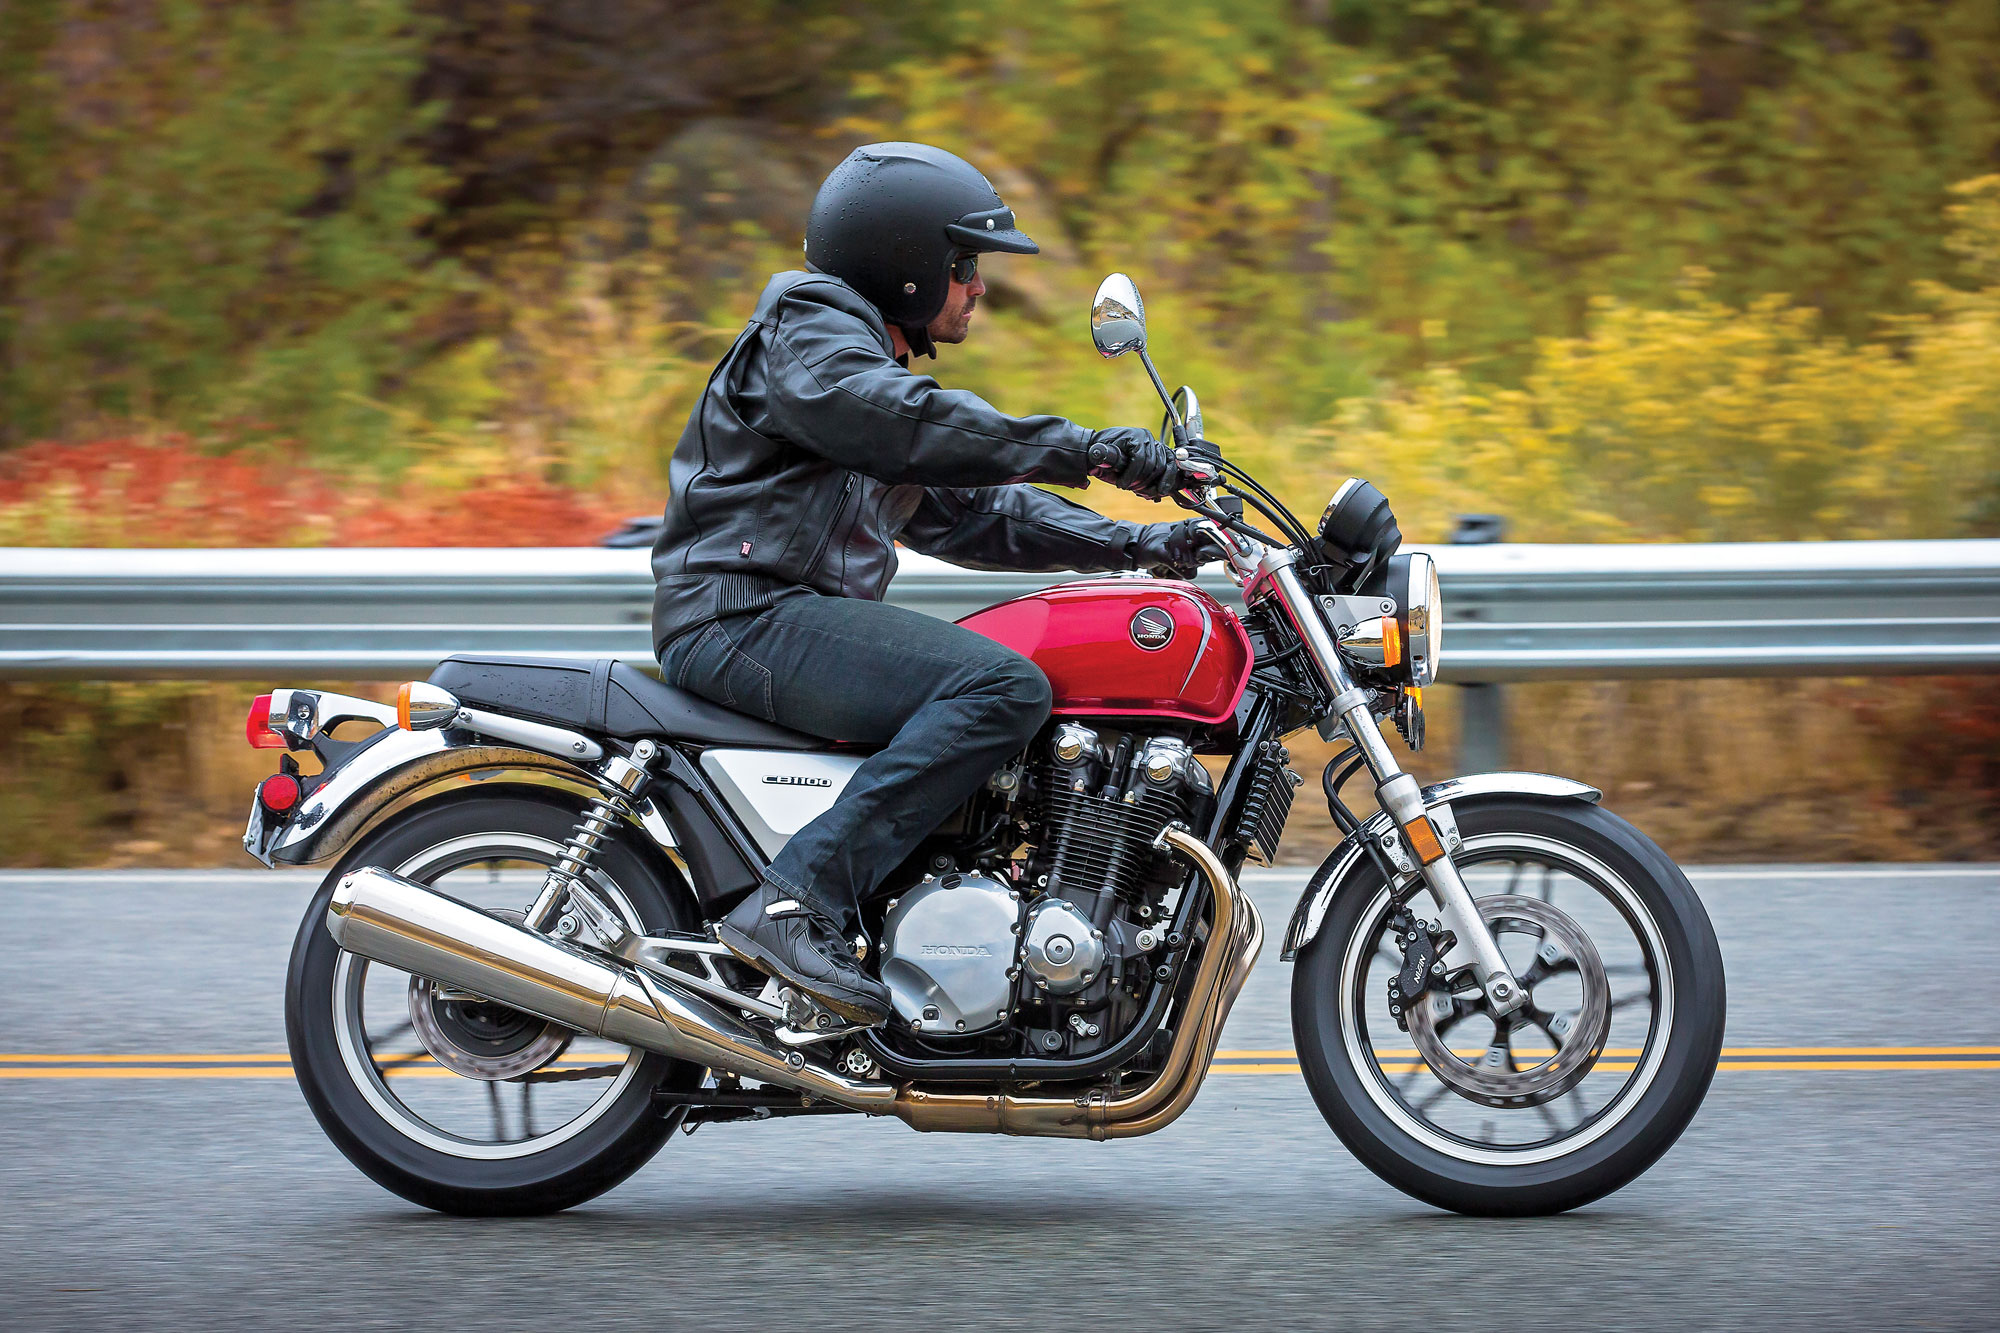 Can You Ride A Honda Cb1100 With An A2 Licence